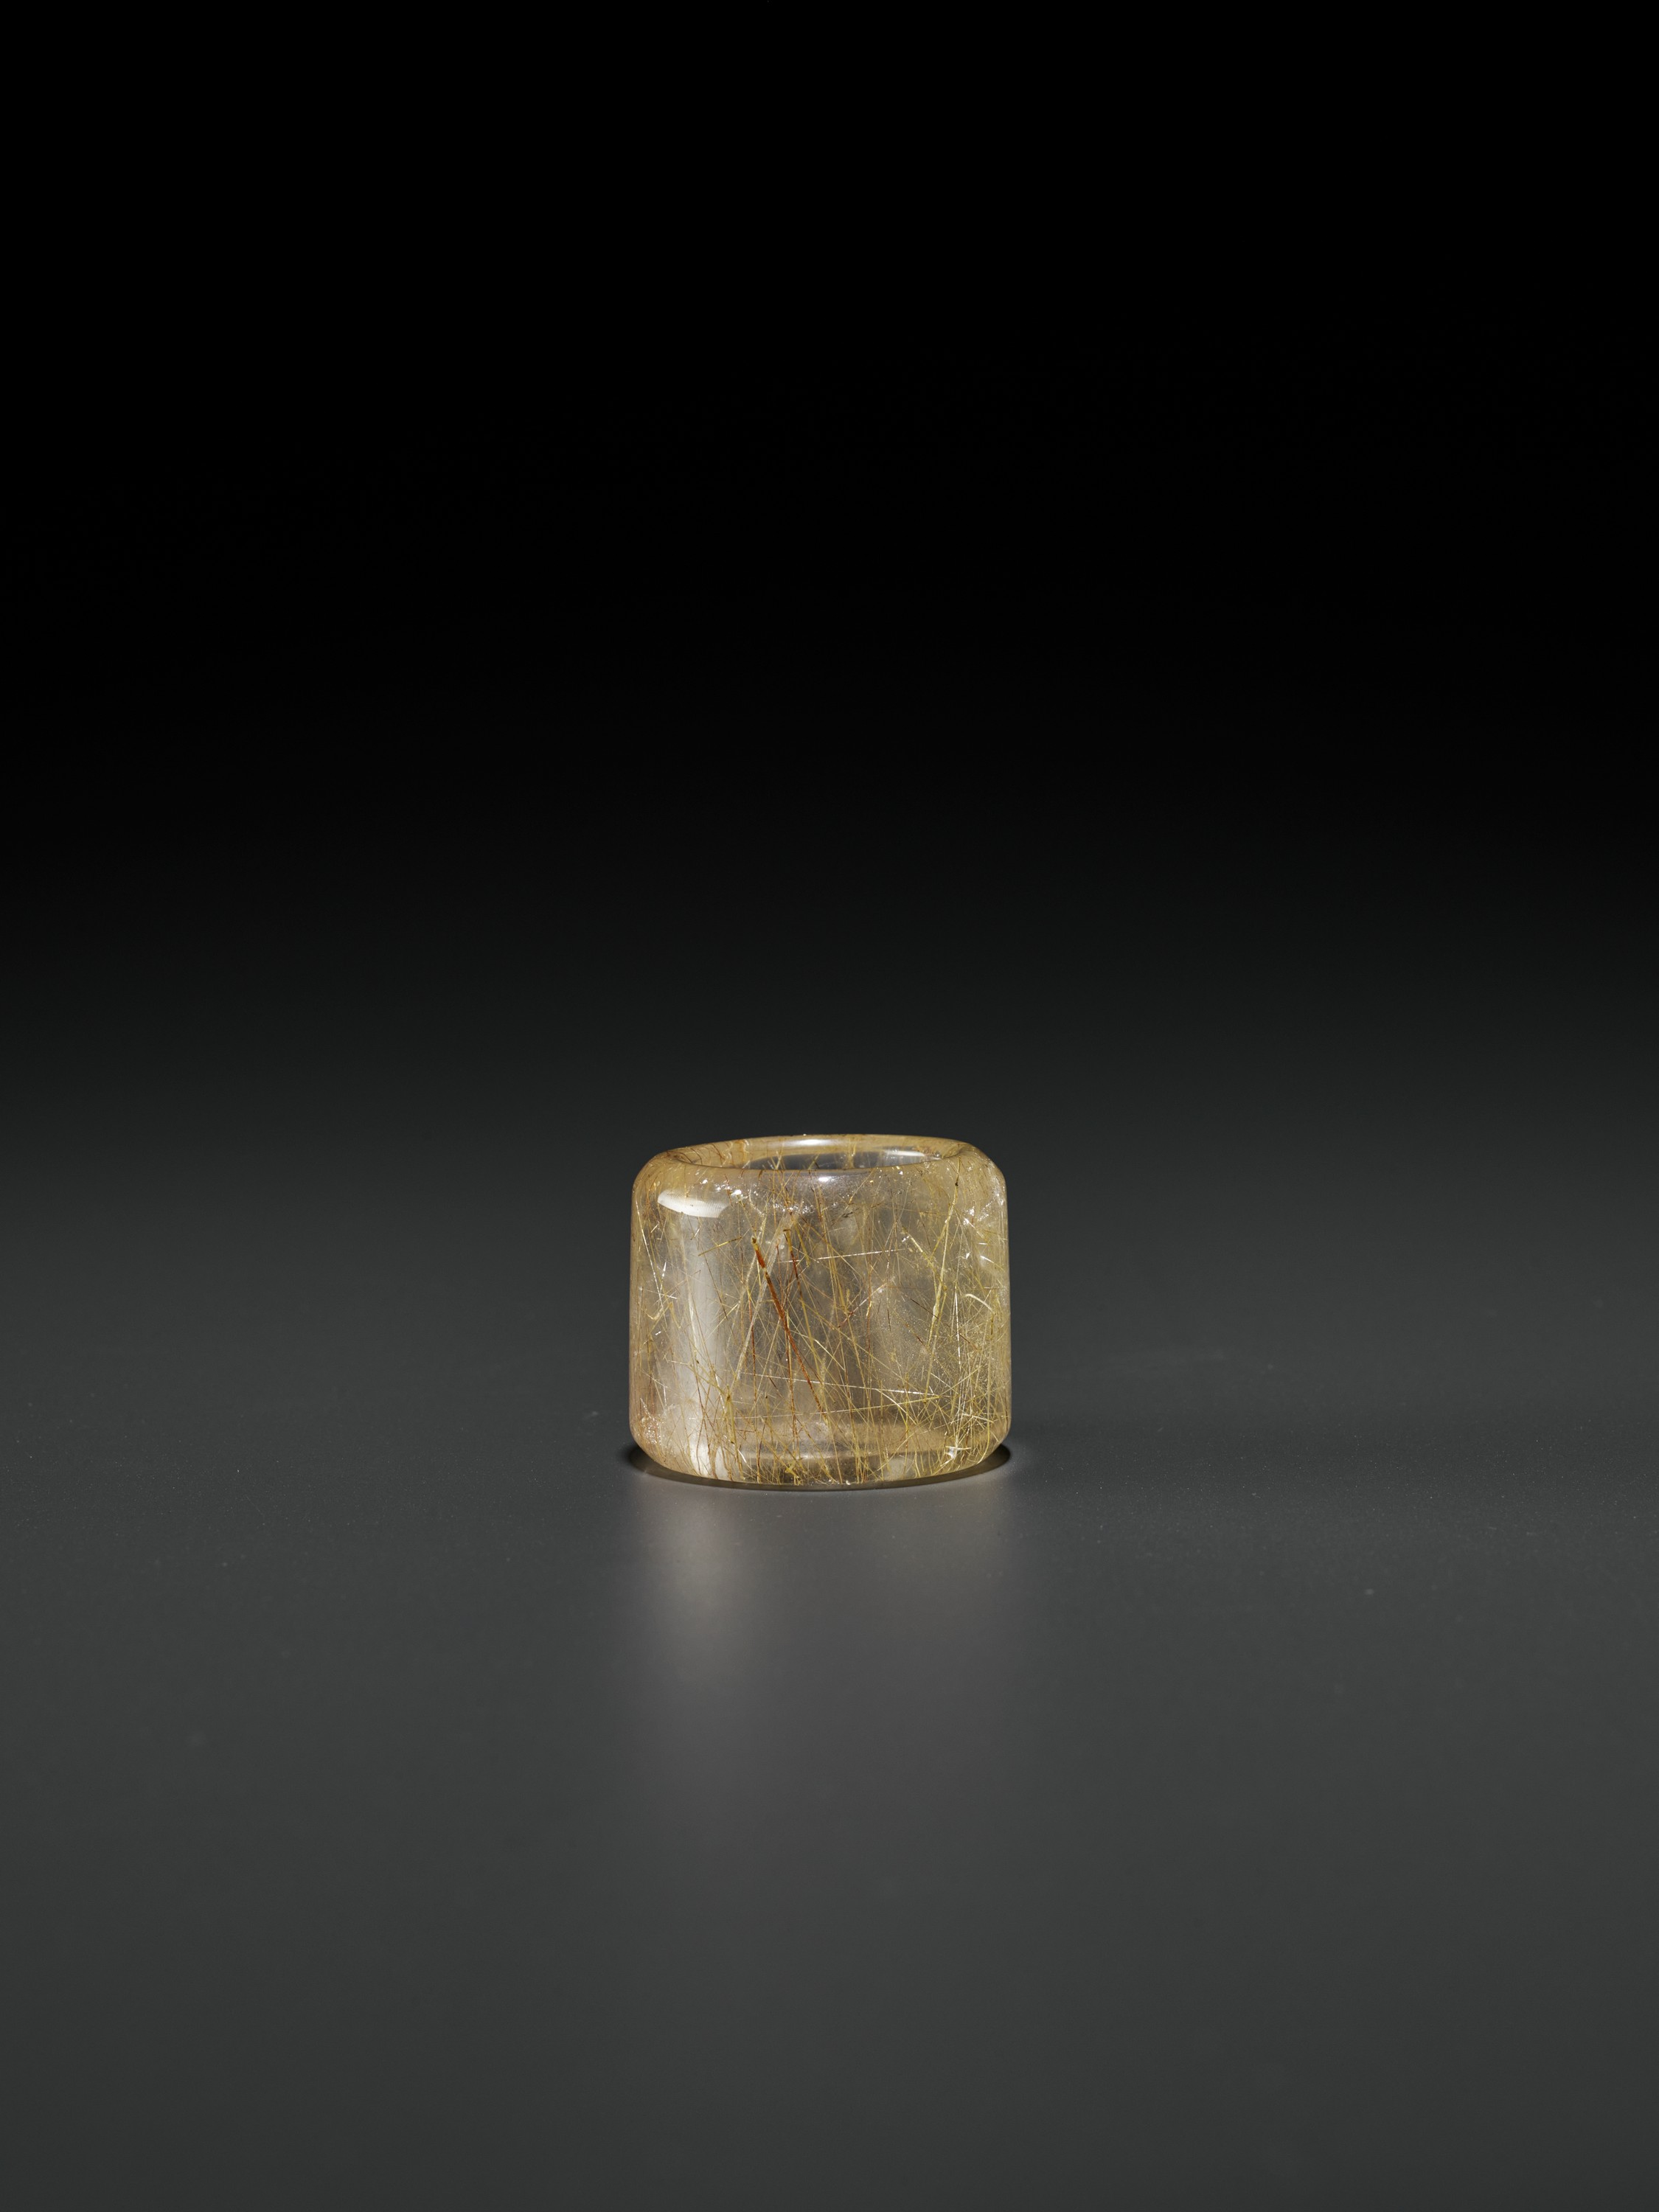 A 'HAIR' CRYSTAL ARCHER'S RING, QING DYNASTY - Image 9 of 9